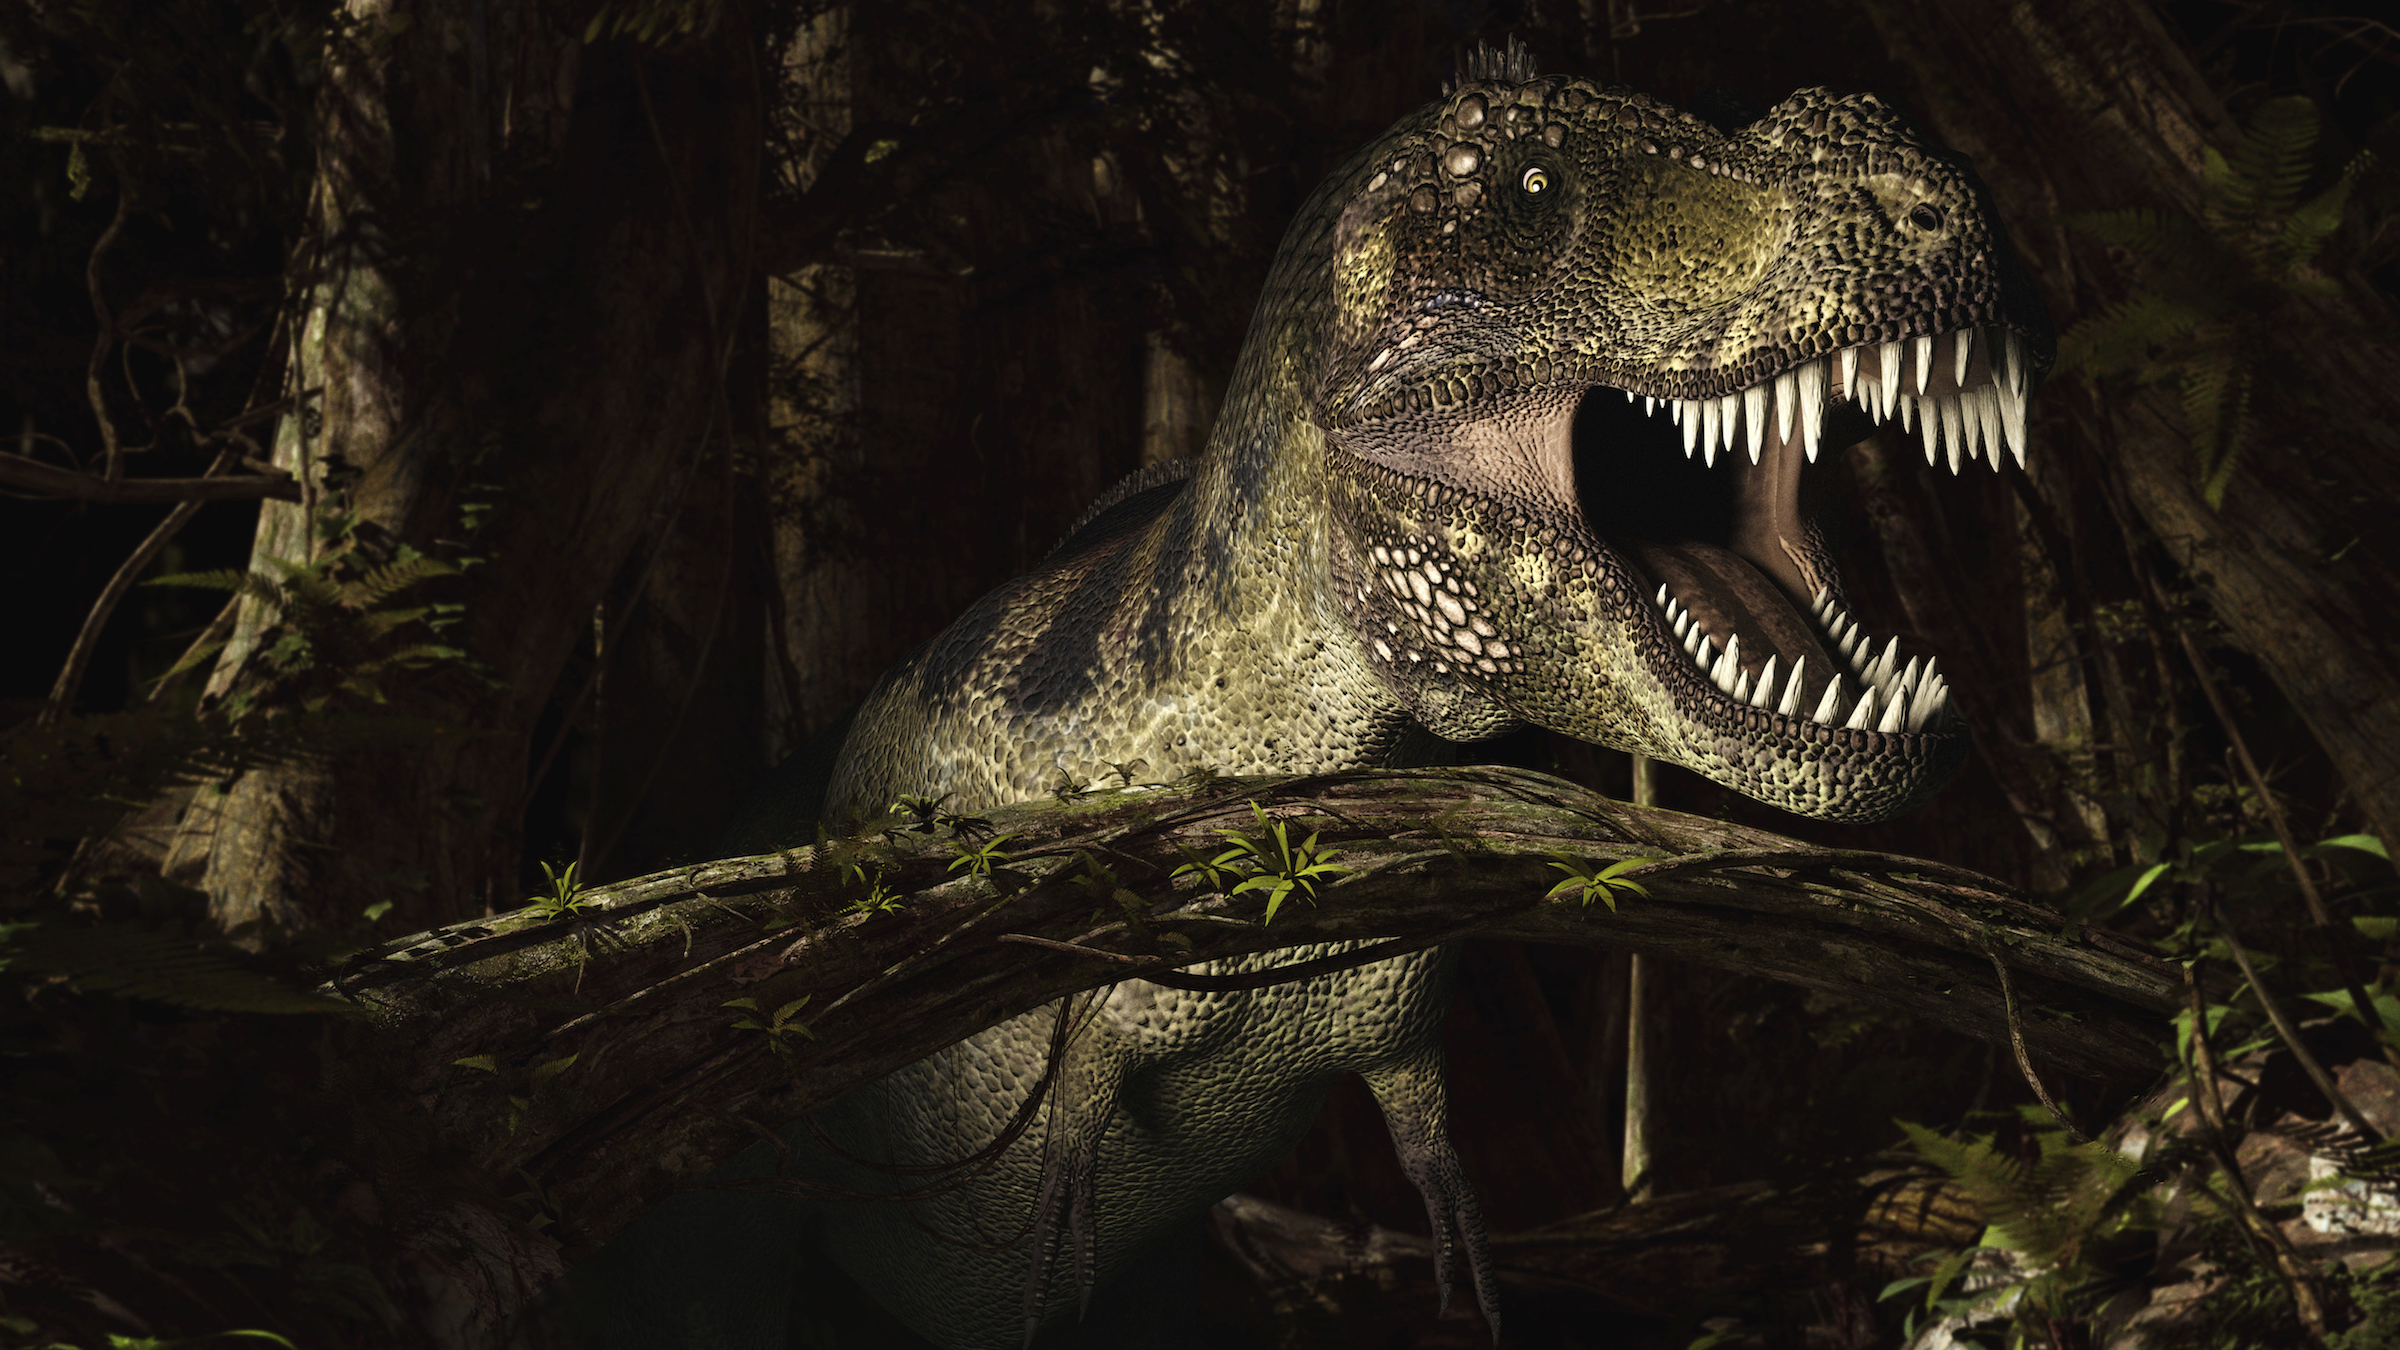 Medium-size dinos are missing from the fossil record. Here's why.